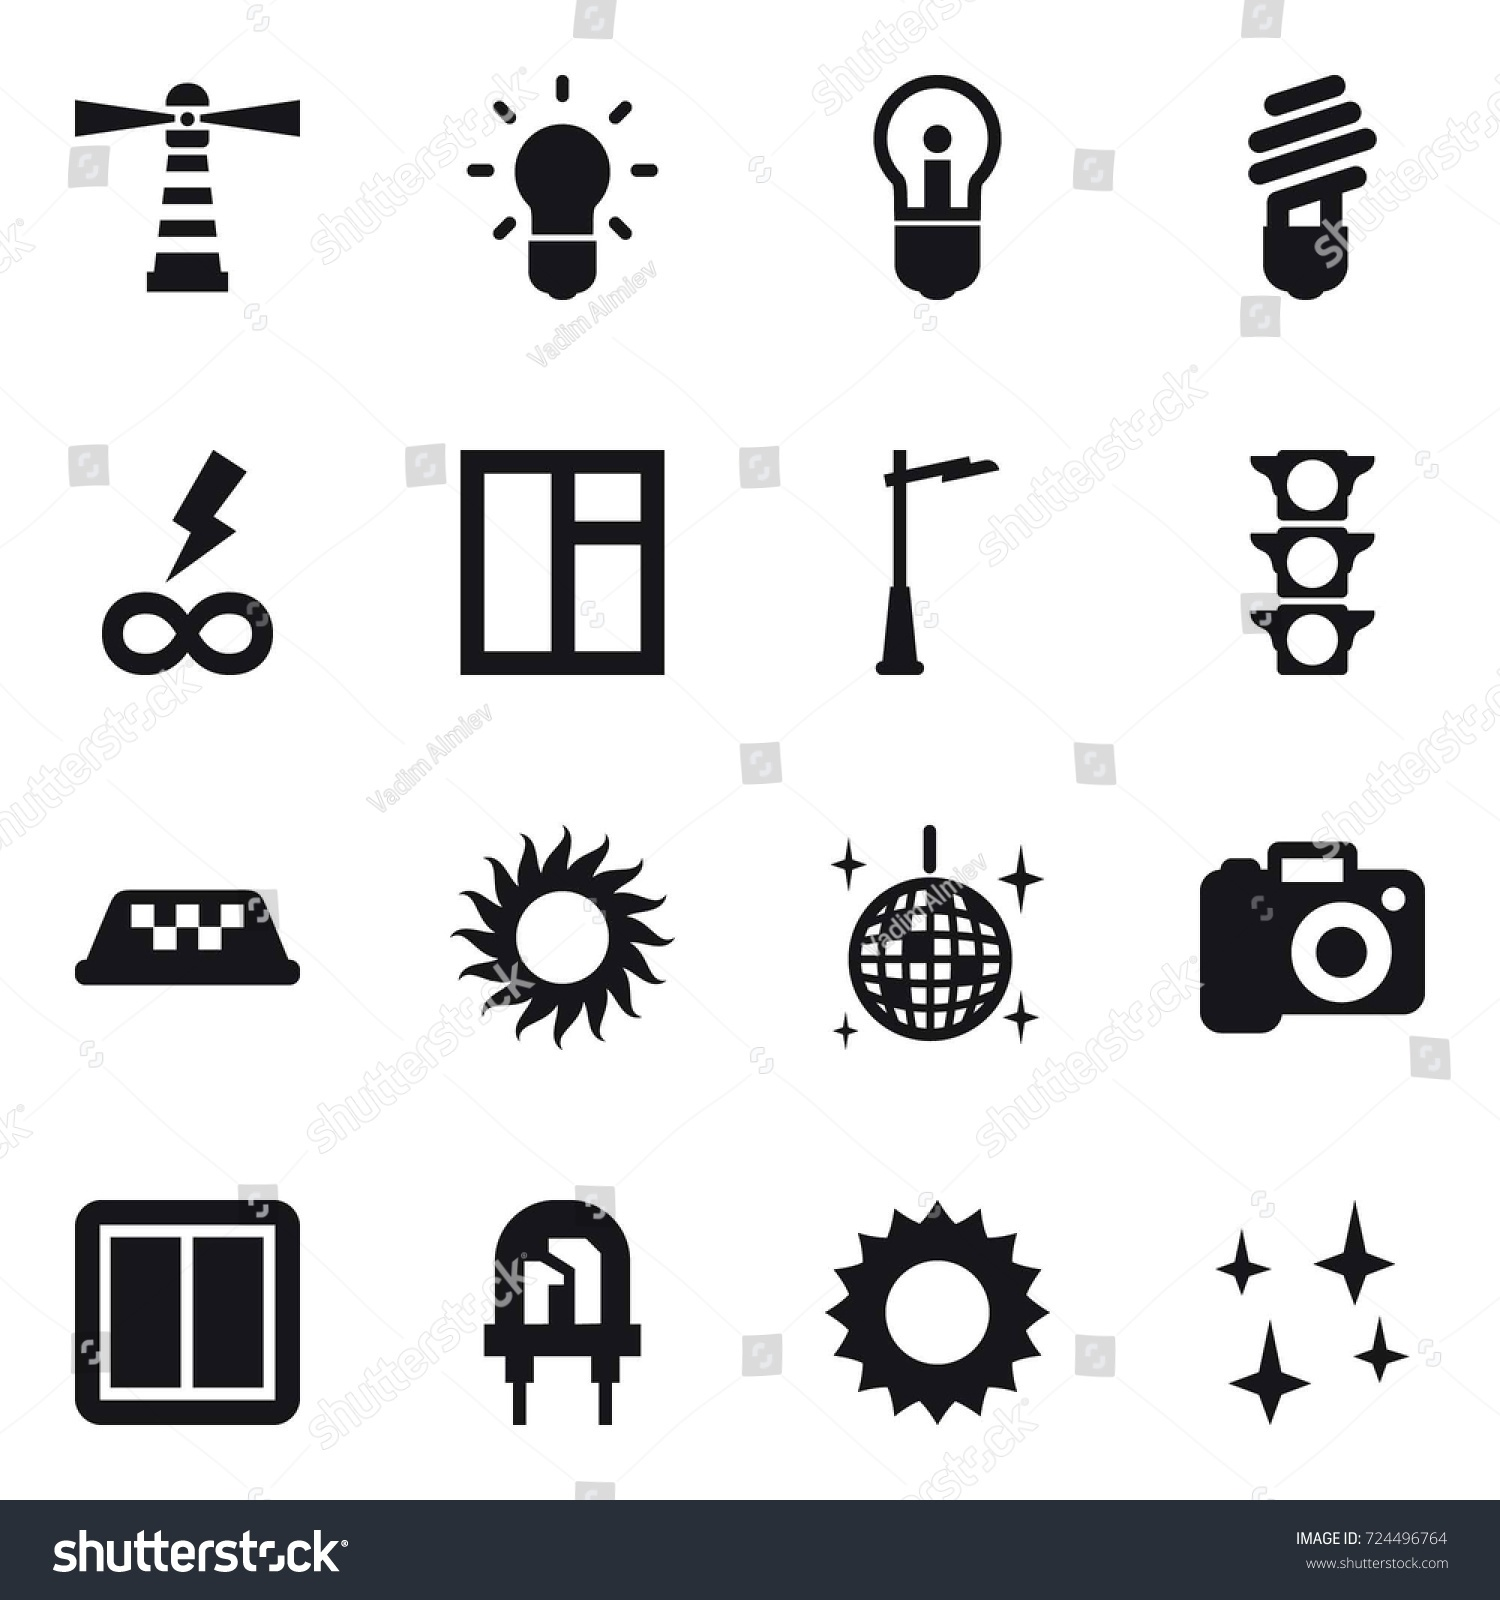 16 Vector Icon Set Lighthouse Bulb Stock Vector 724496764 - Shutterstock for Power Window Symbol  110ylc